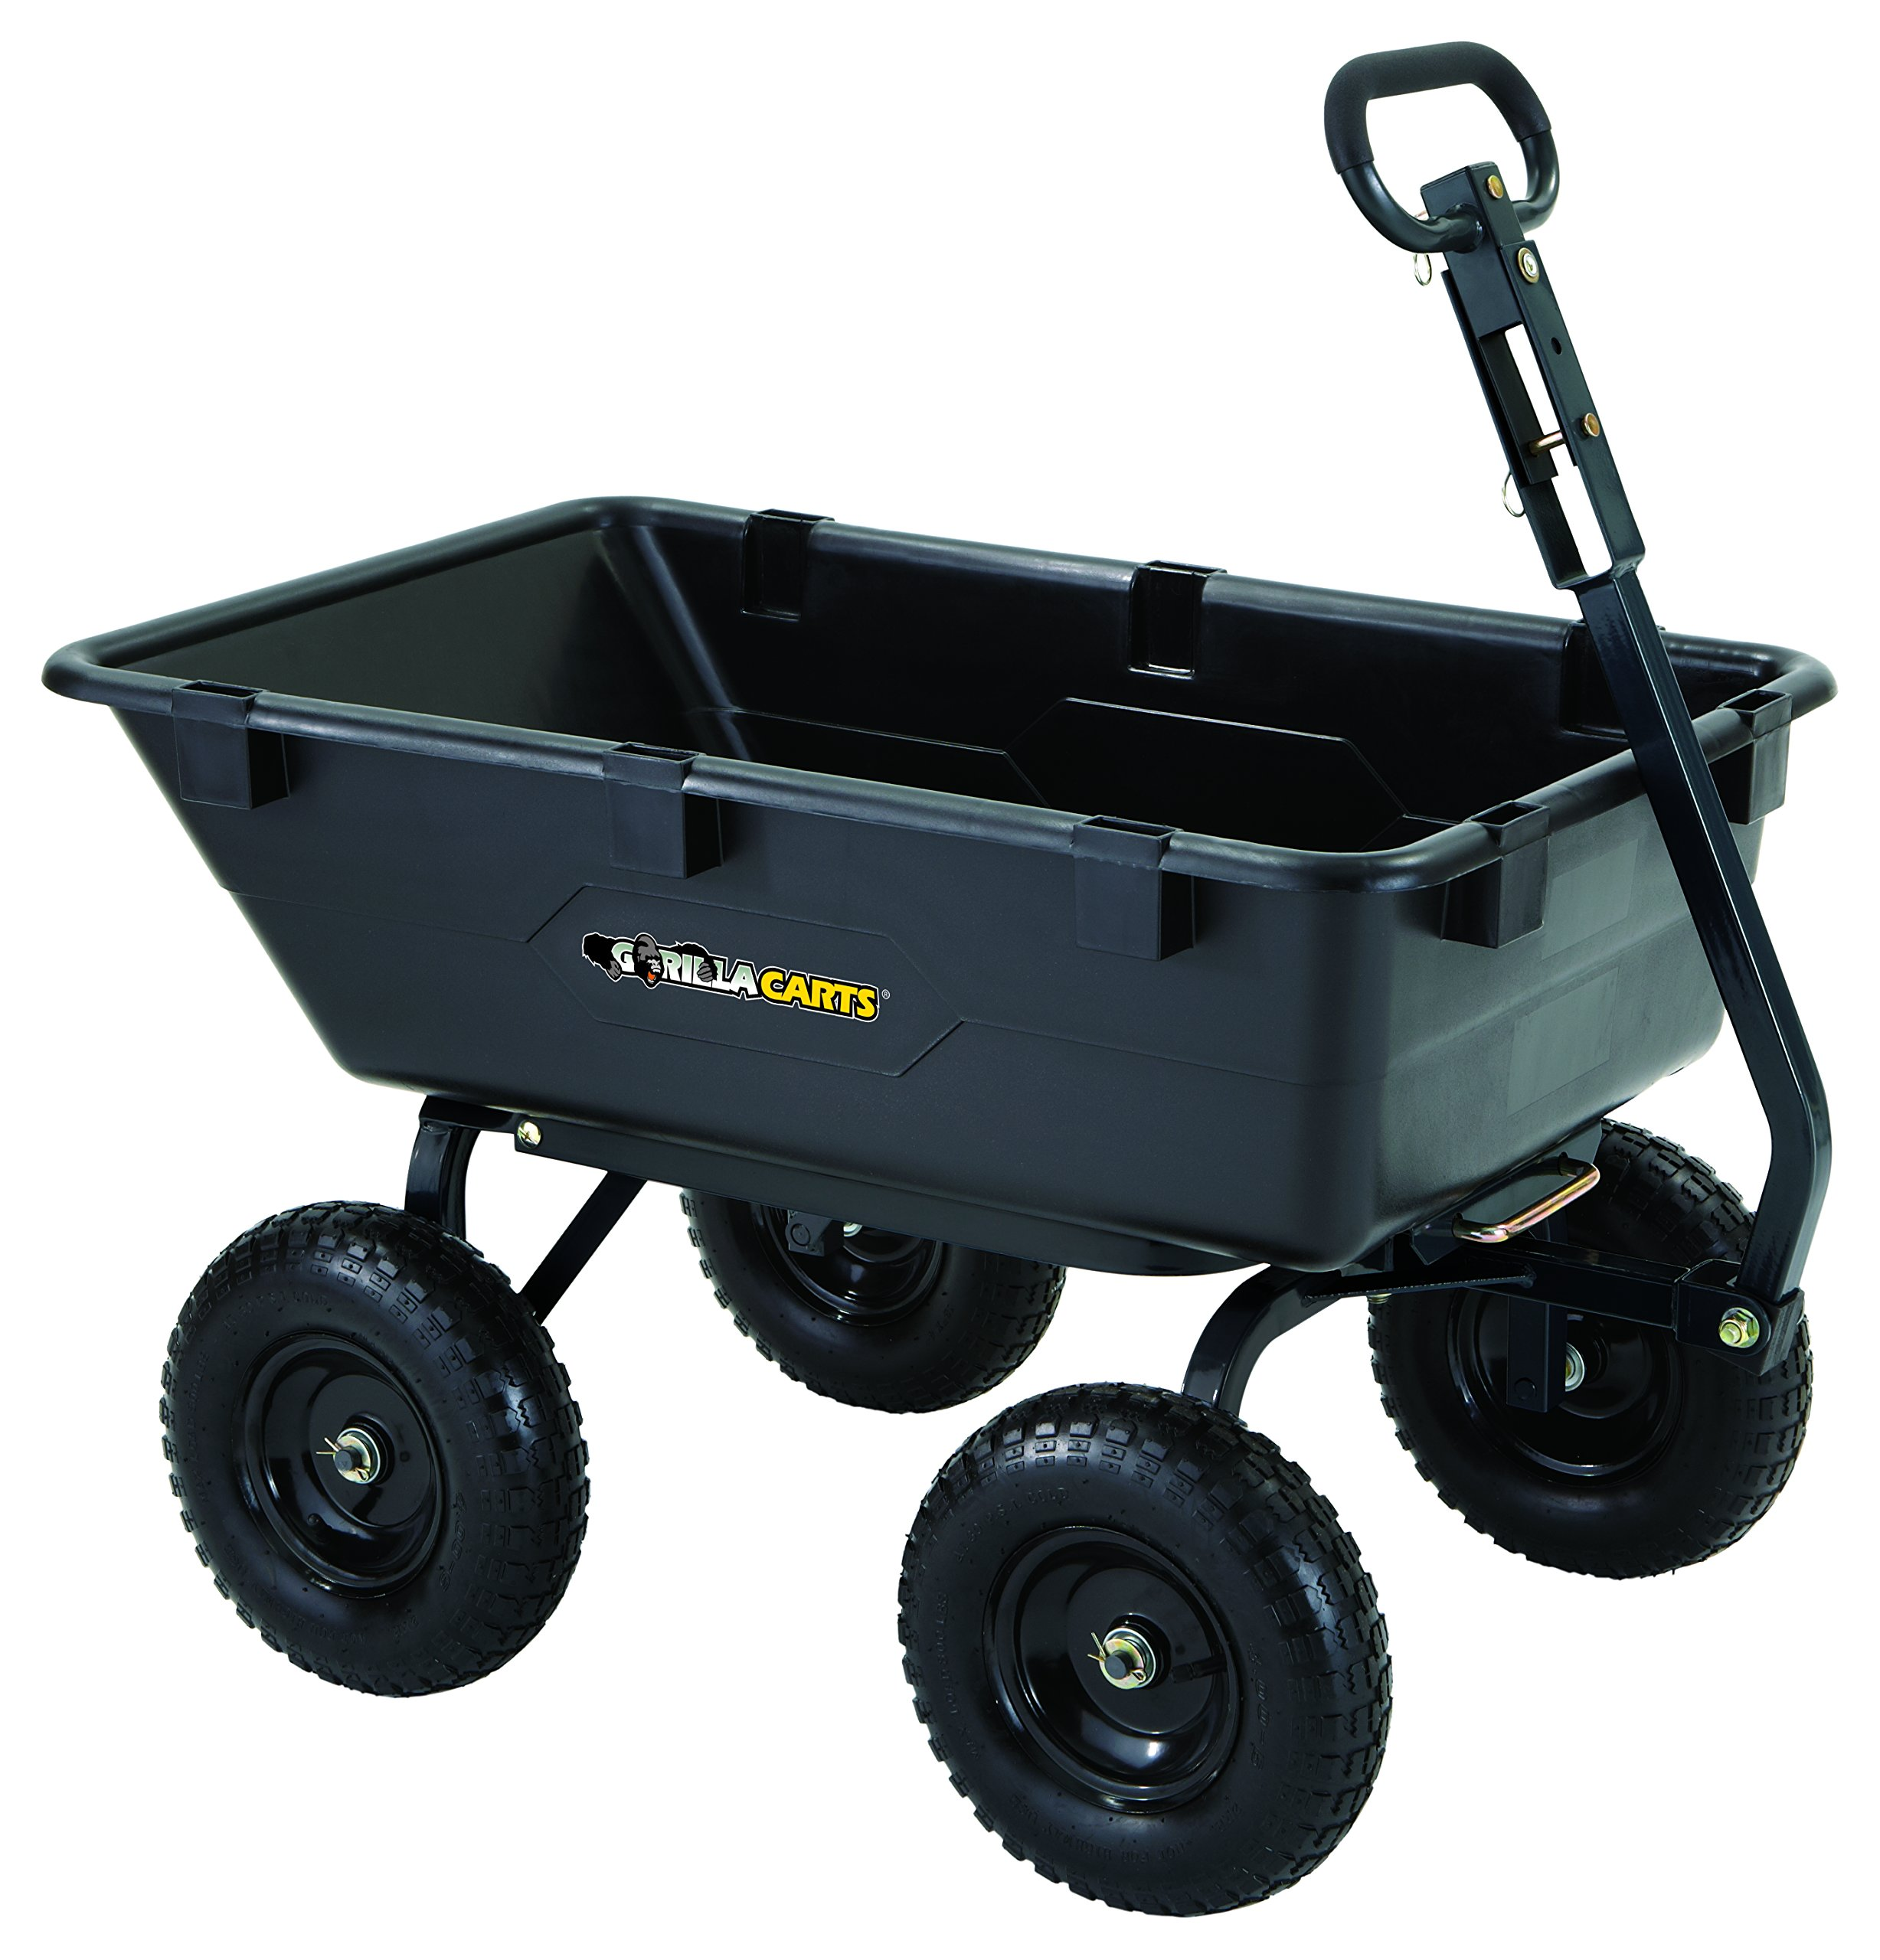 Gorilla Carts GOR6PS Heavy-Duty Poly Yard Dump Cart with 2-In-1 Convertible Handle, 1,200-Pound Capacity, Black by Gorilla Carts